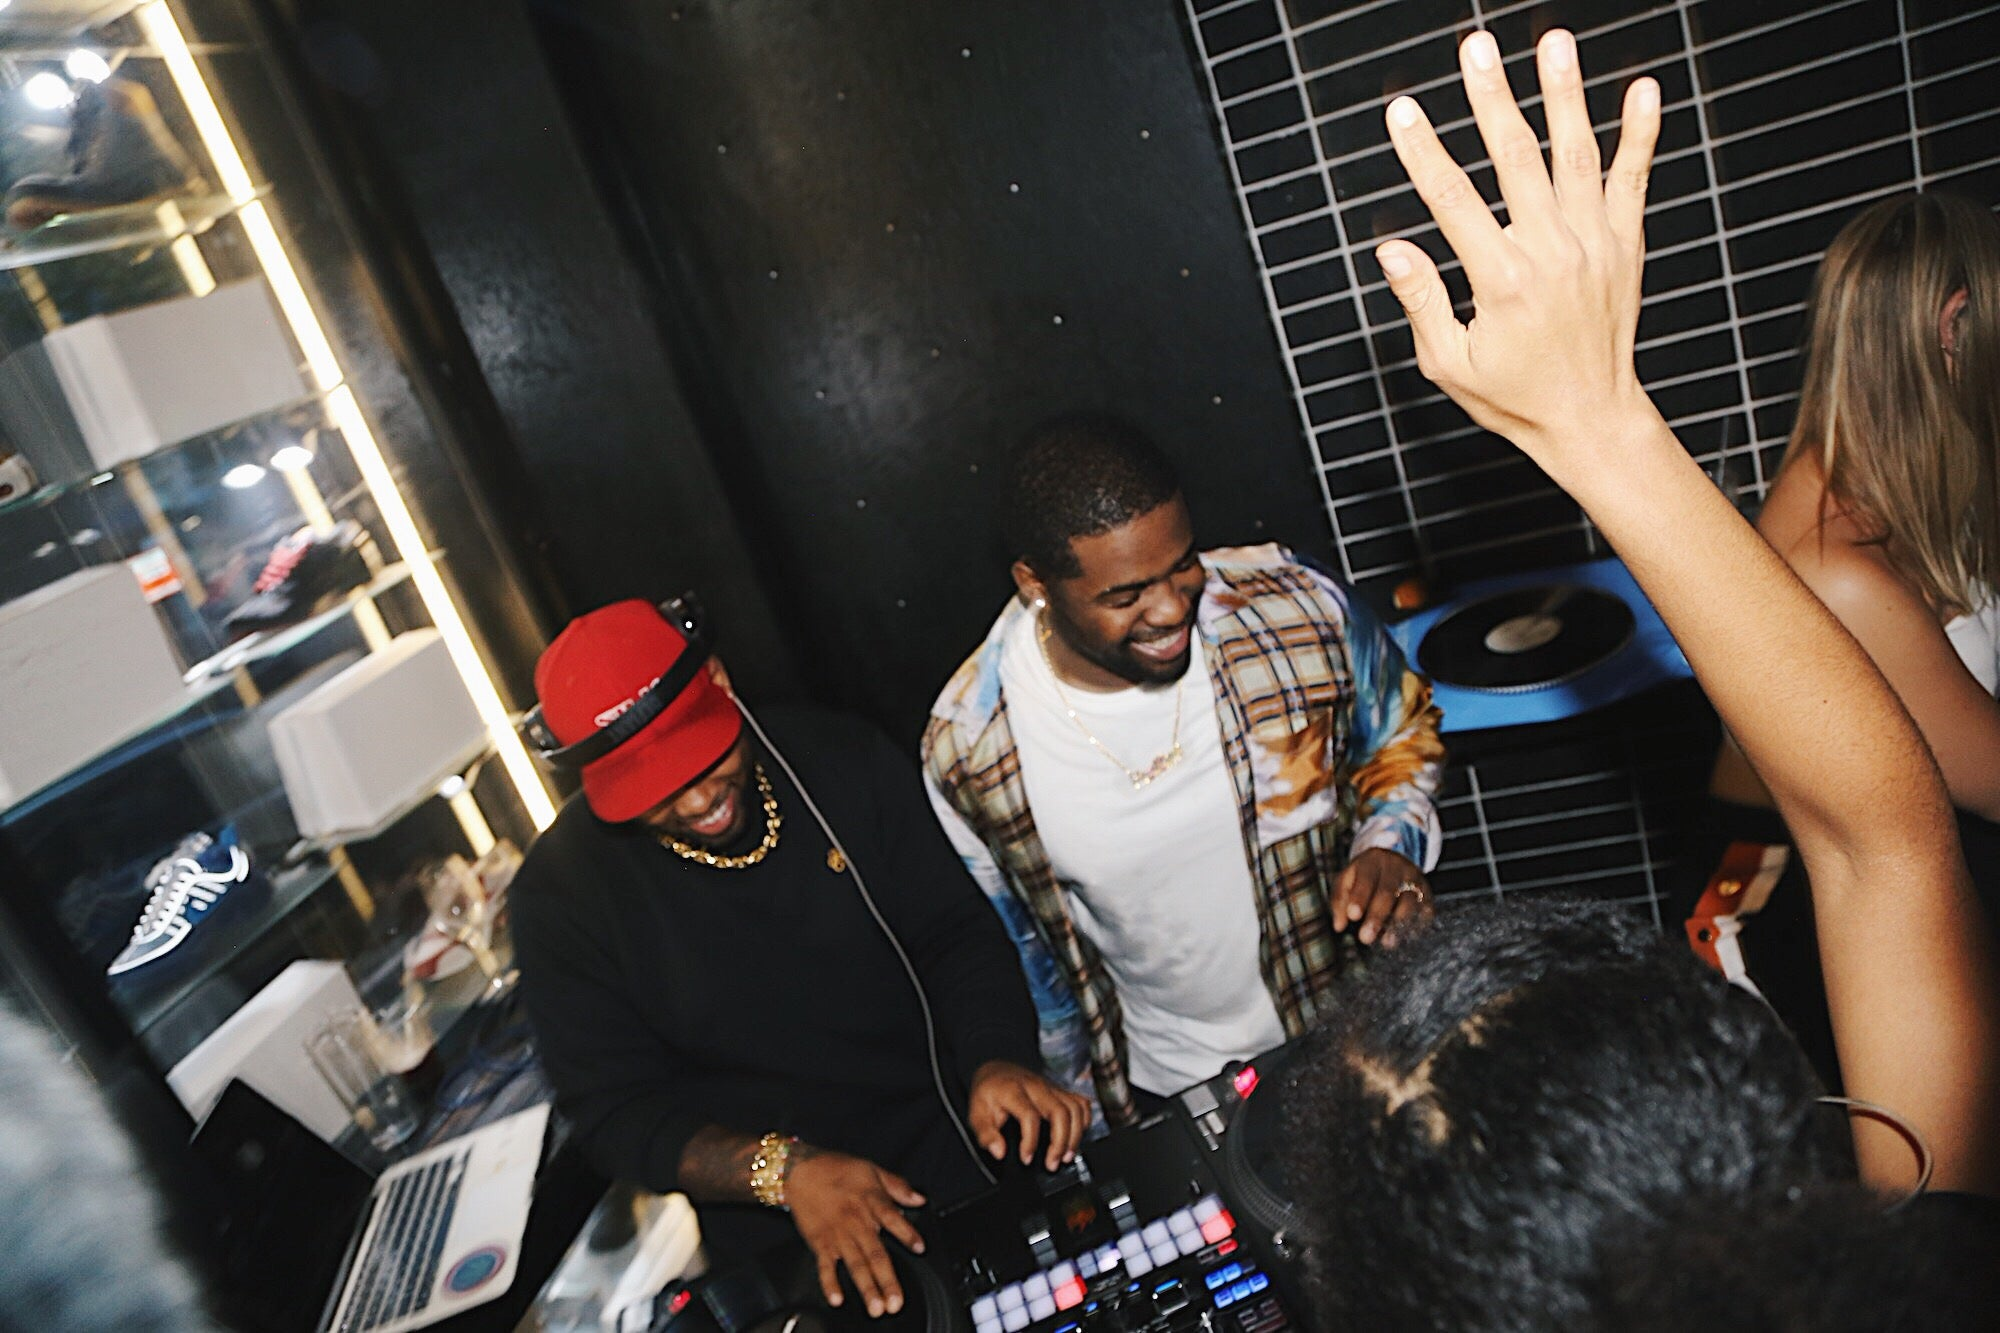 ASAP FERG AT BUTTER